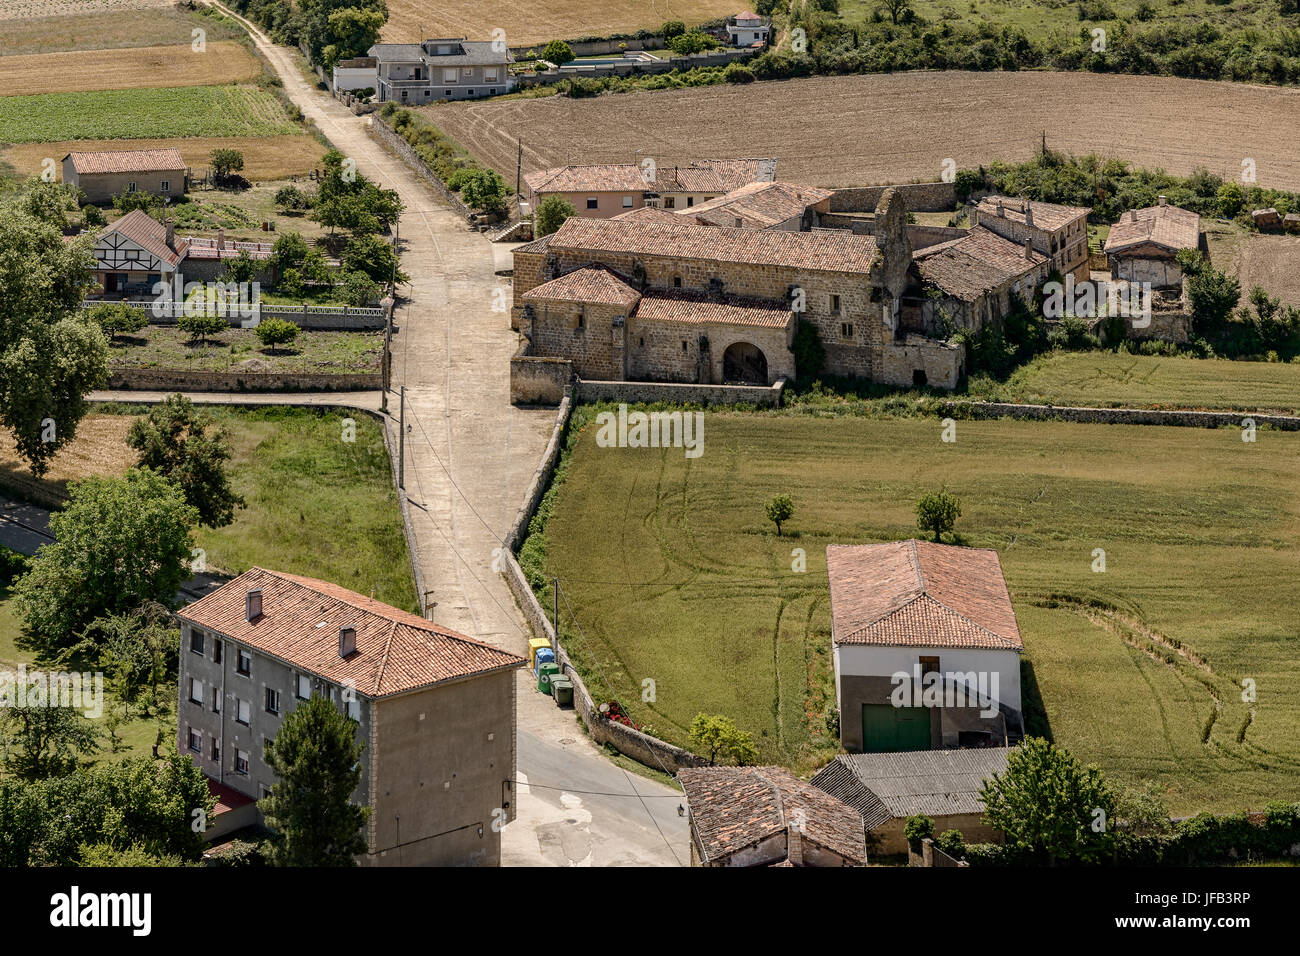 Old road from Santiago de Bilbao to Santander in the town of Frias, Burgos, Castile and Leon, Spain, Europe. - Stock Image